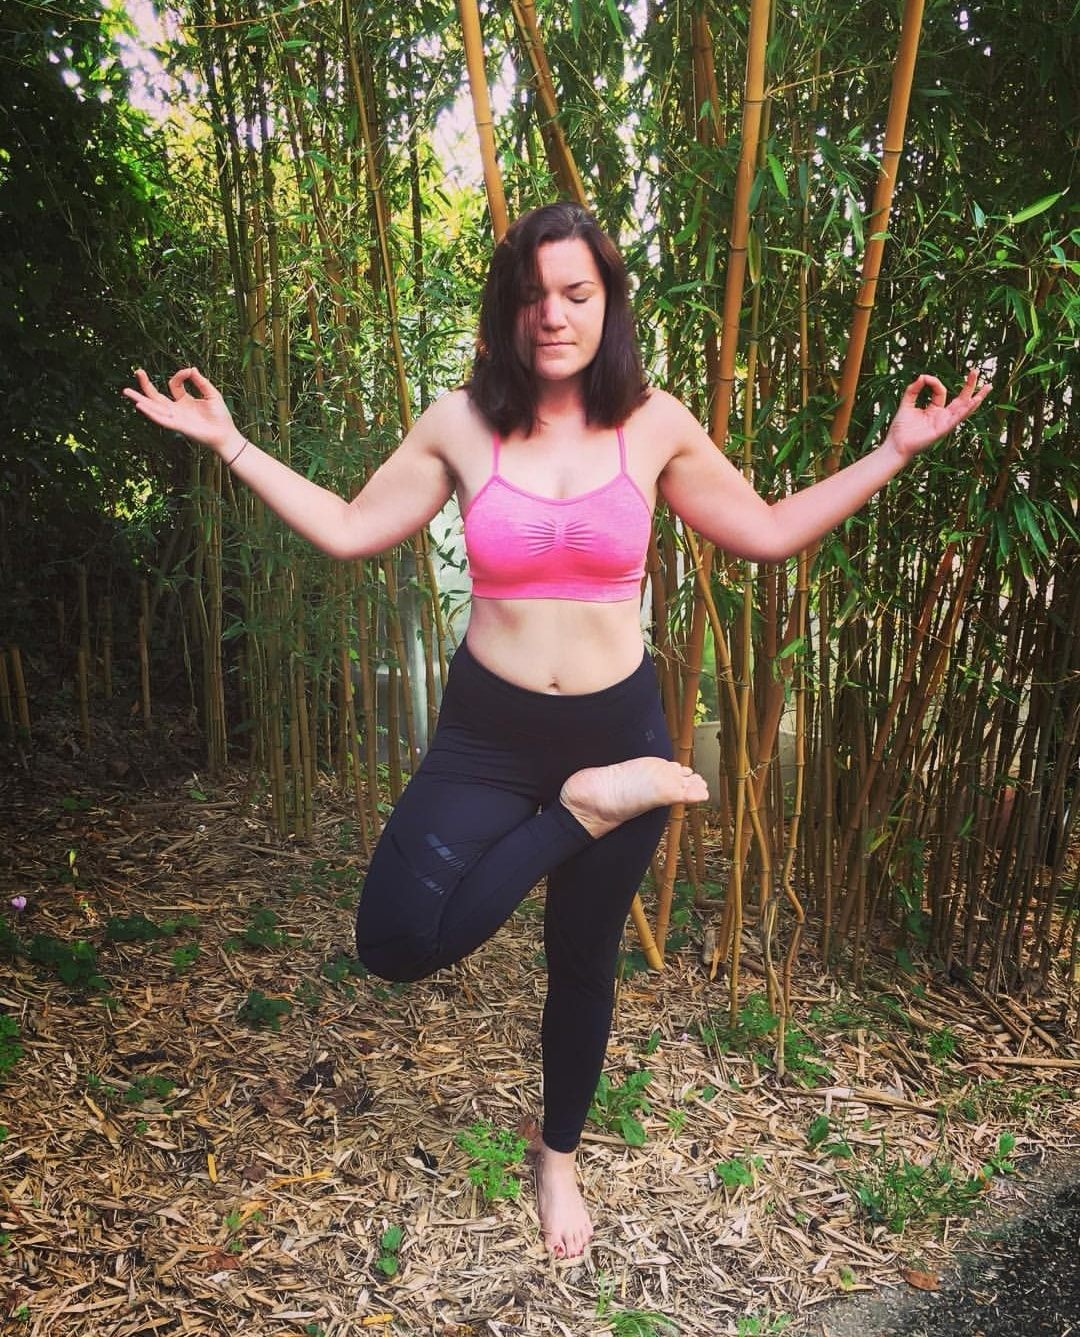 Welcome Christina and Ashtanga classes